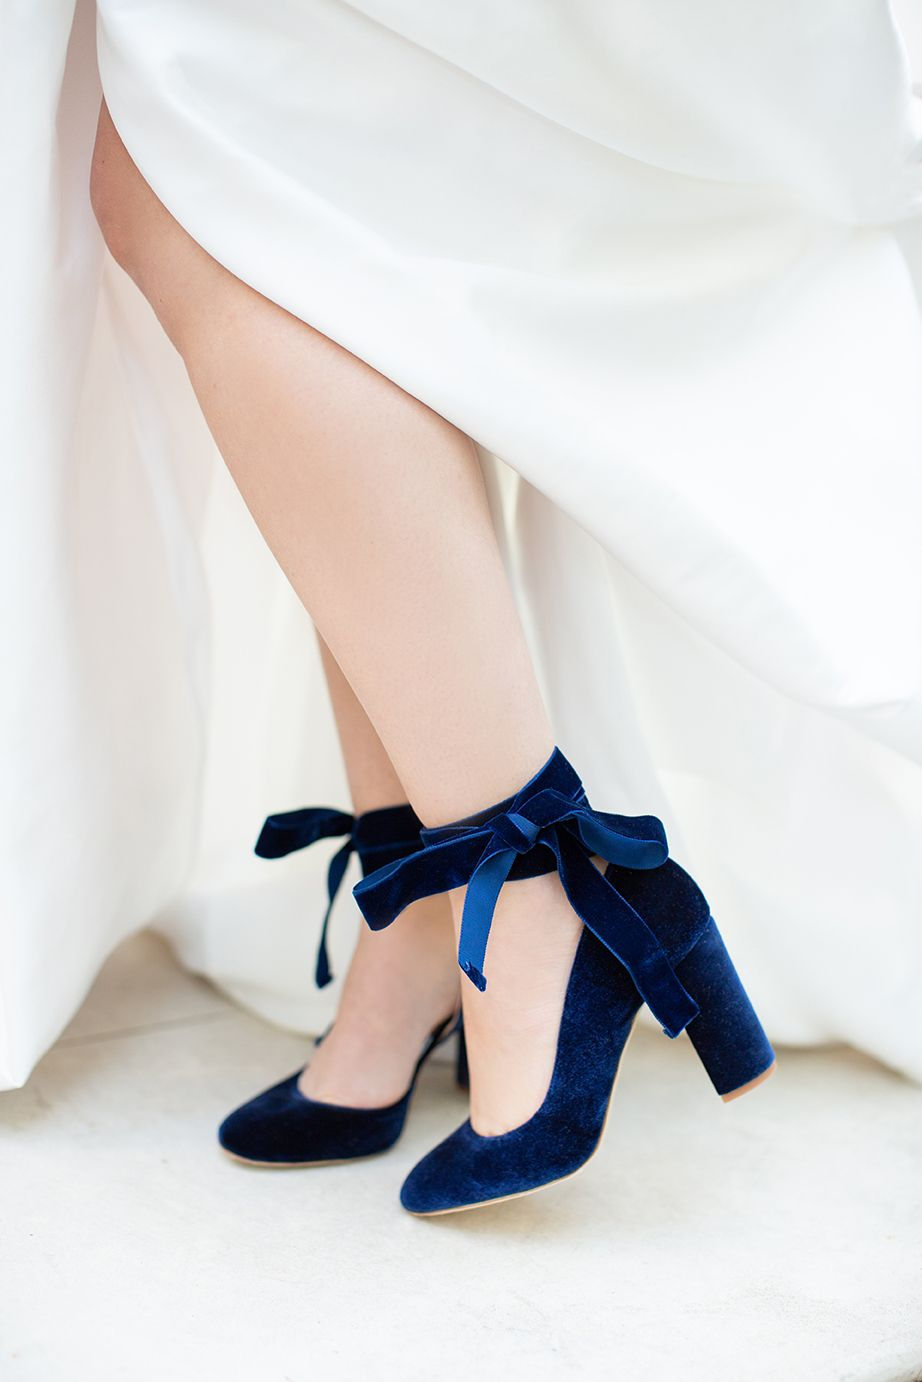 Trendy High Heel Shoes Most Comfortable Shoes For Women Strappy Stiletto Heels